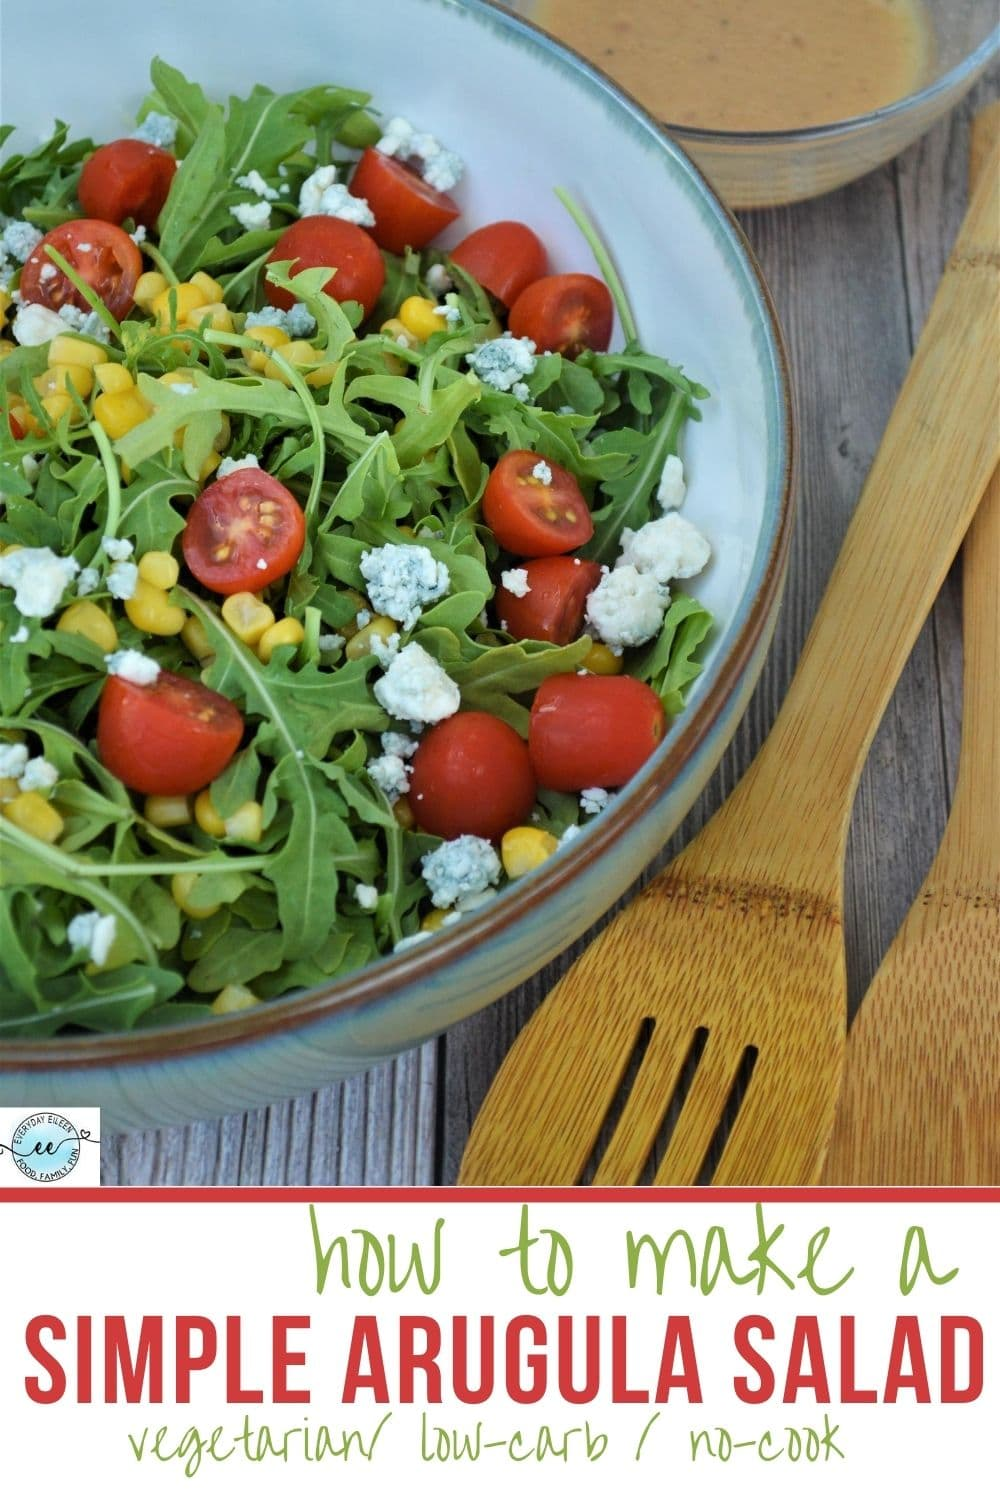 Simple Arugula Salad, light peppery greens, fresh corn, vine ripe tomatoes topped with blue cheese crumbles. A low-carb, vegetarian salad with a homemade vinaigrette, ready in 10 minutes. #simplearugulasalad #arugula #lowcarbsalad #everydayeileen  via @everydayeileen